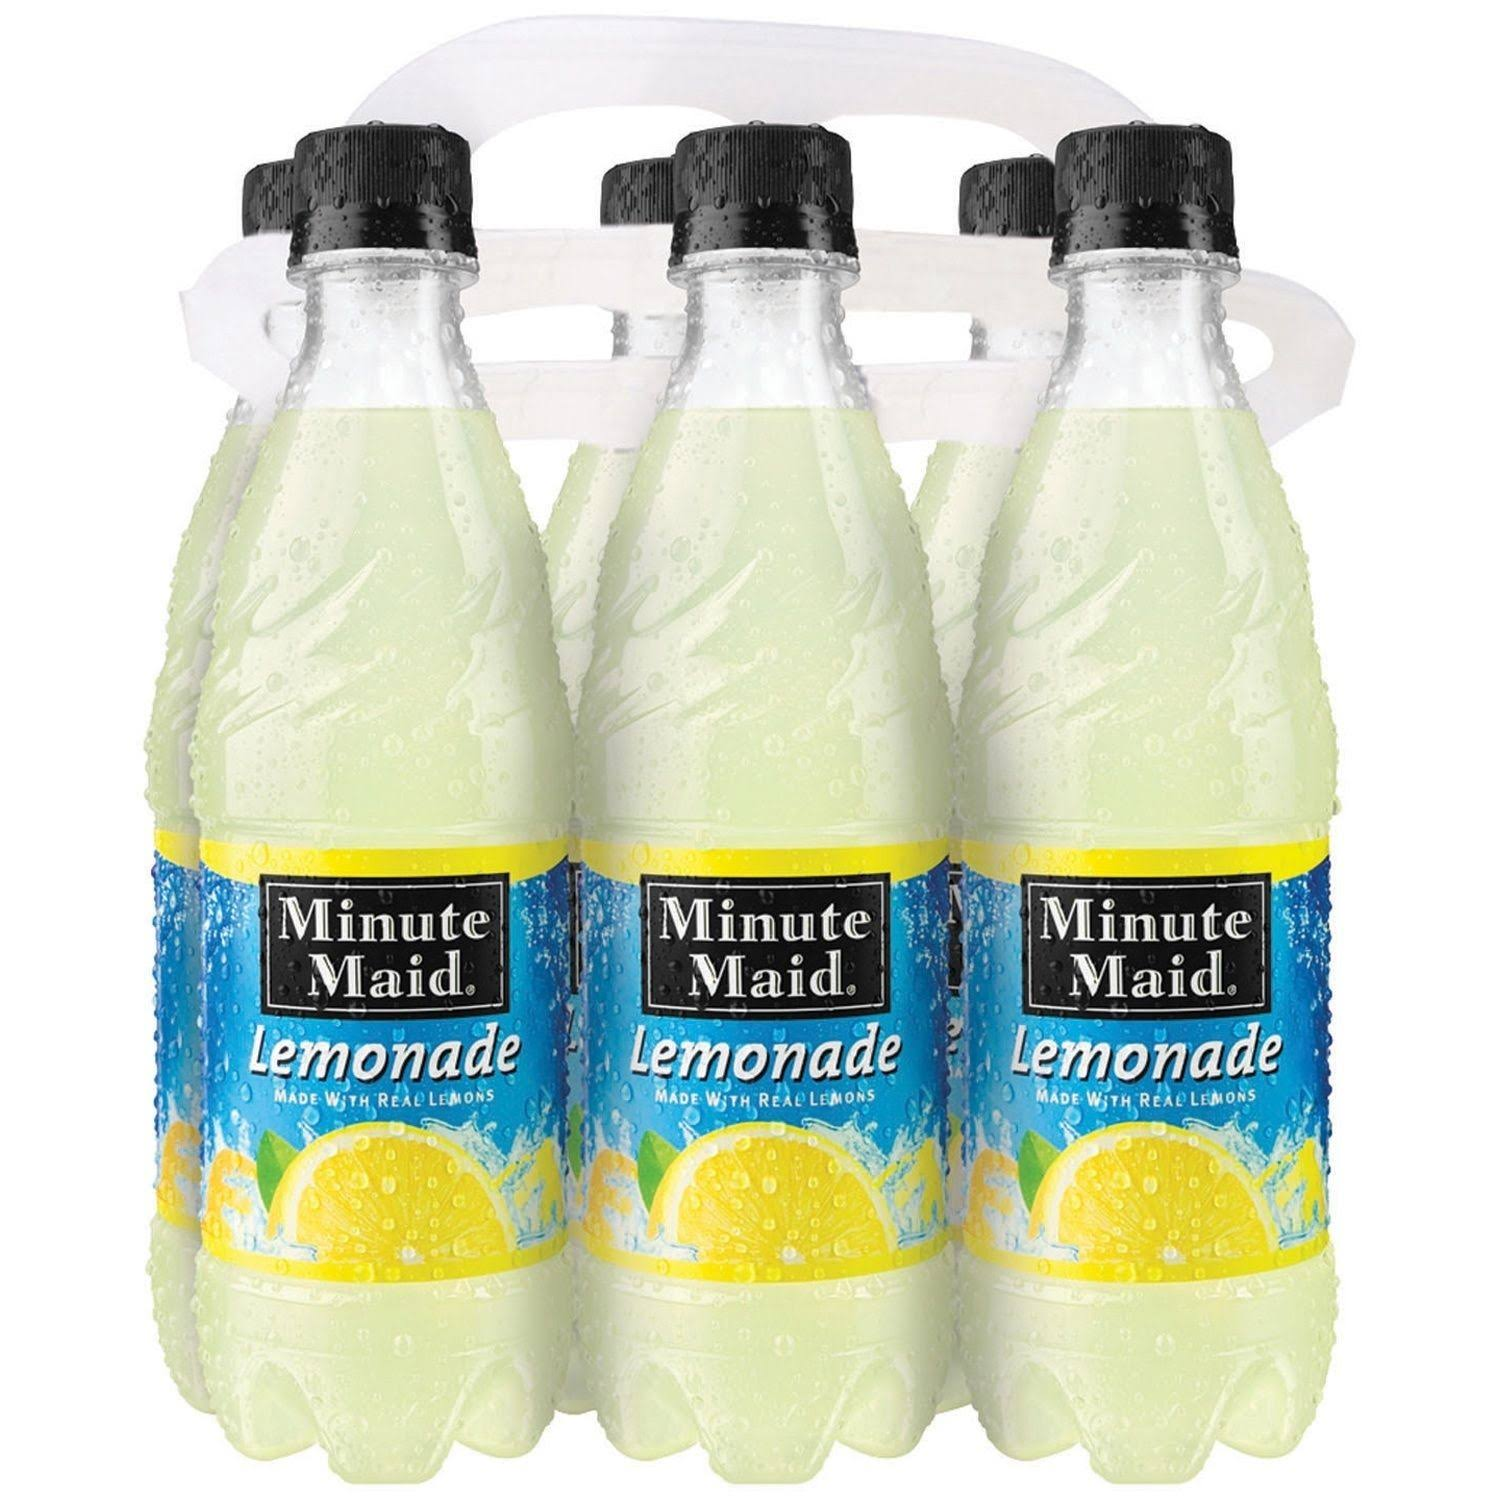 Minute Maid Lemonade - 6 Pack